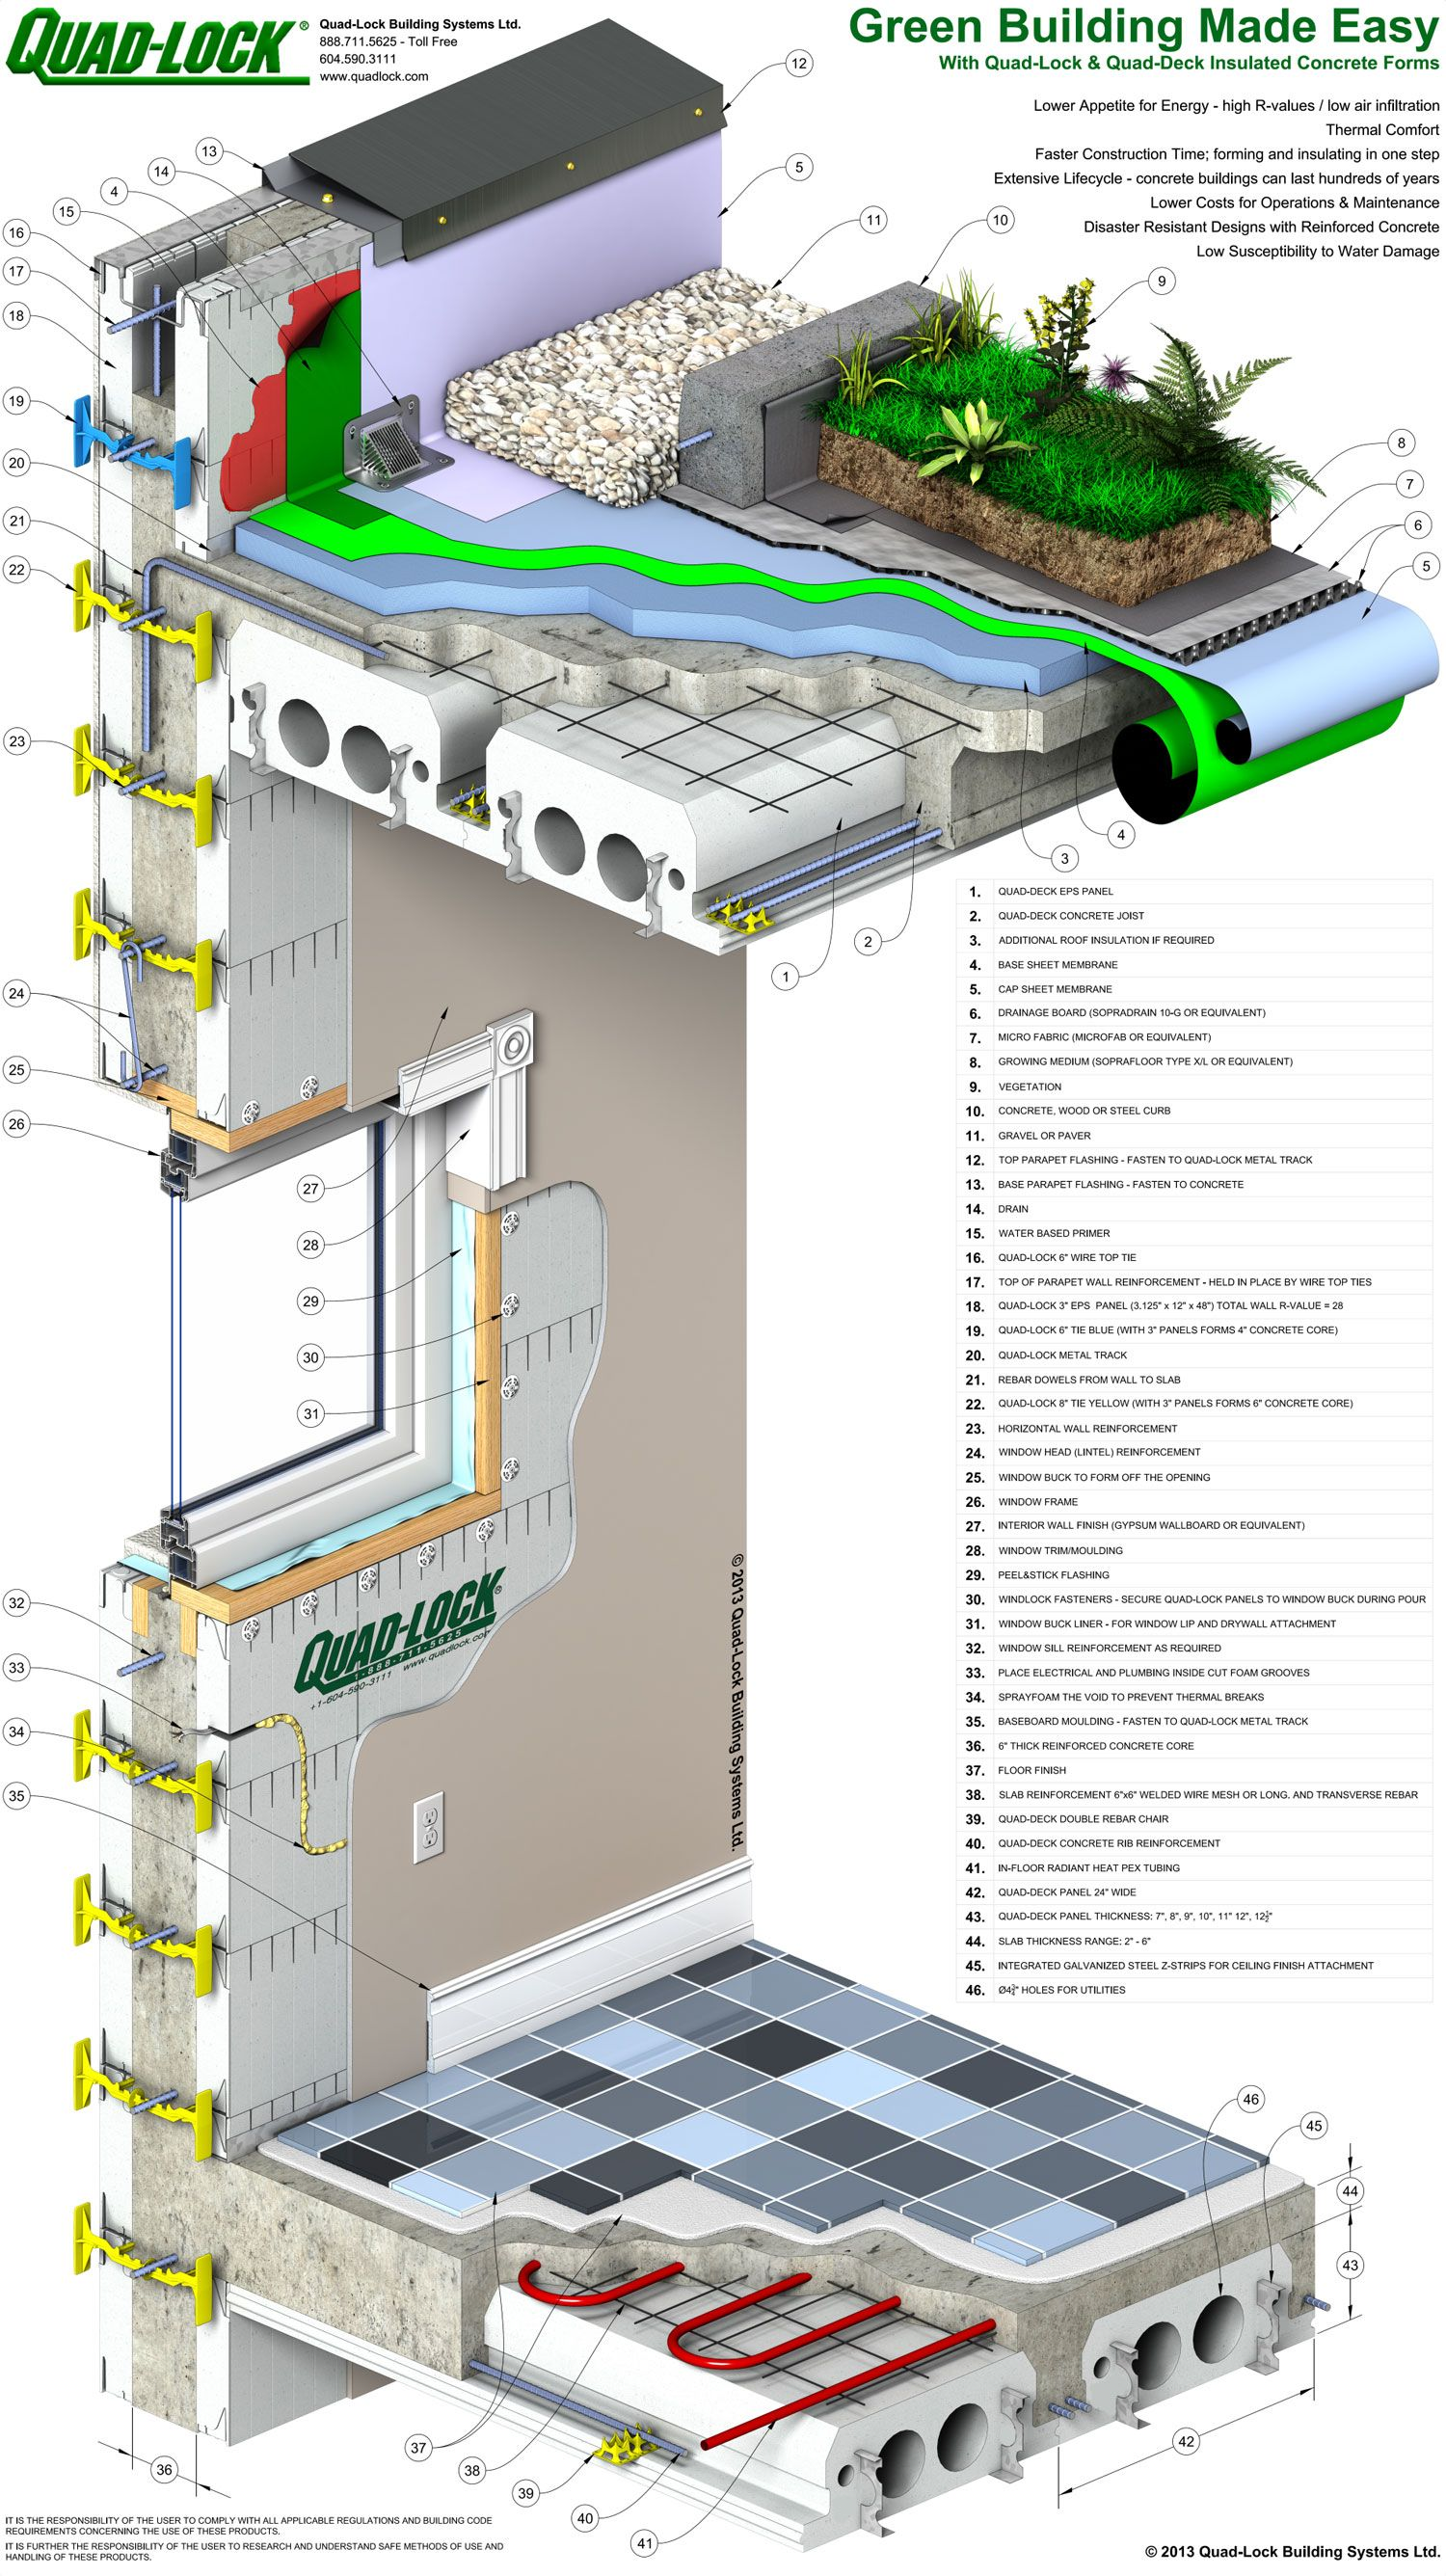 Insulated Concrete Building Envelope Insulated Concrete Forms Concrete Building Architecture Details